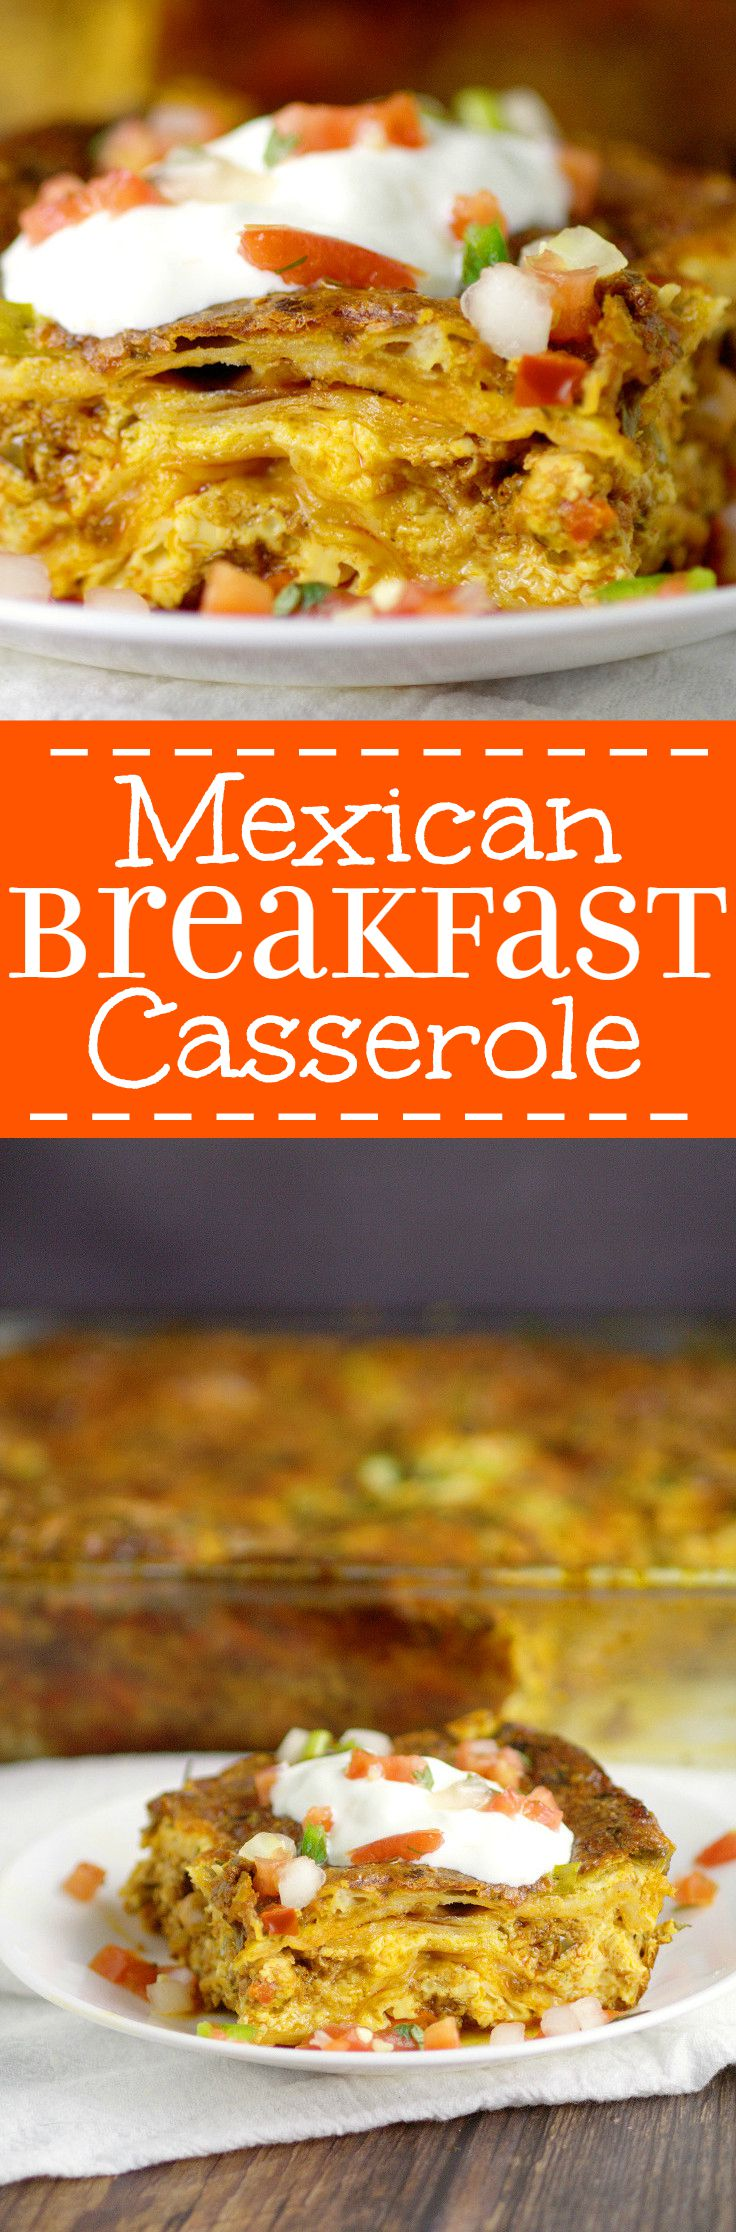 Mexican Breakfast Casserole recipe is a make-ahead, overnight breakfast casserole recipe, packed with eggs, gooey cheese, and spicy chorizo and peppers.  What a great breakfast recipe idea for holidays like Christmas, Thanksgiving, or Easter!